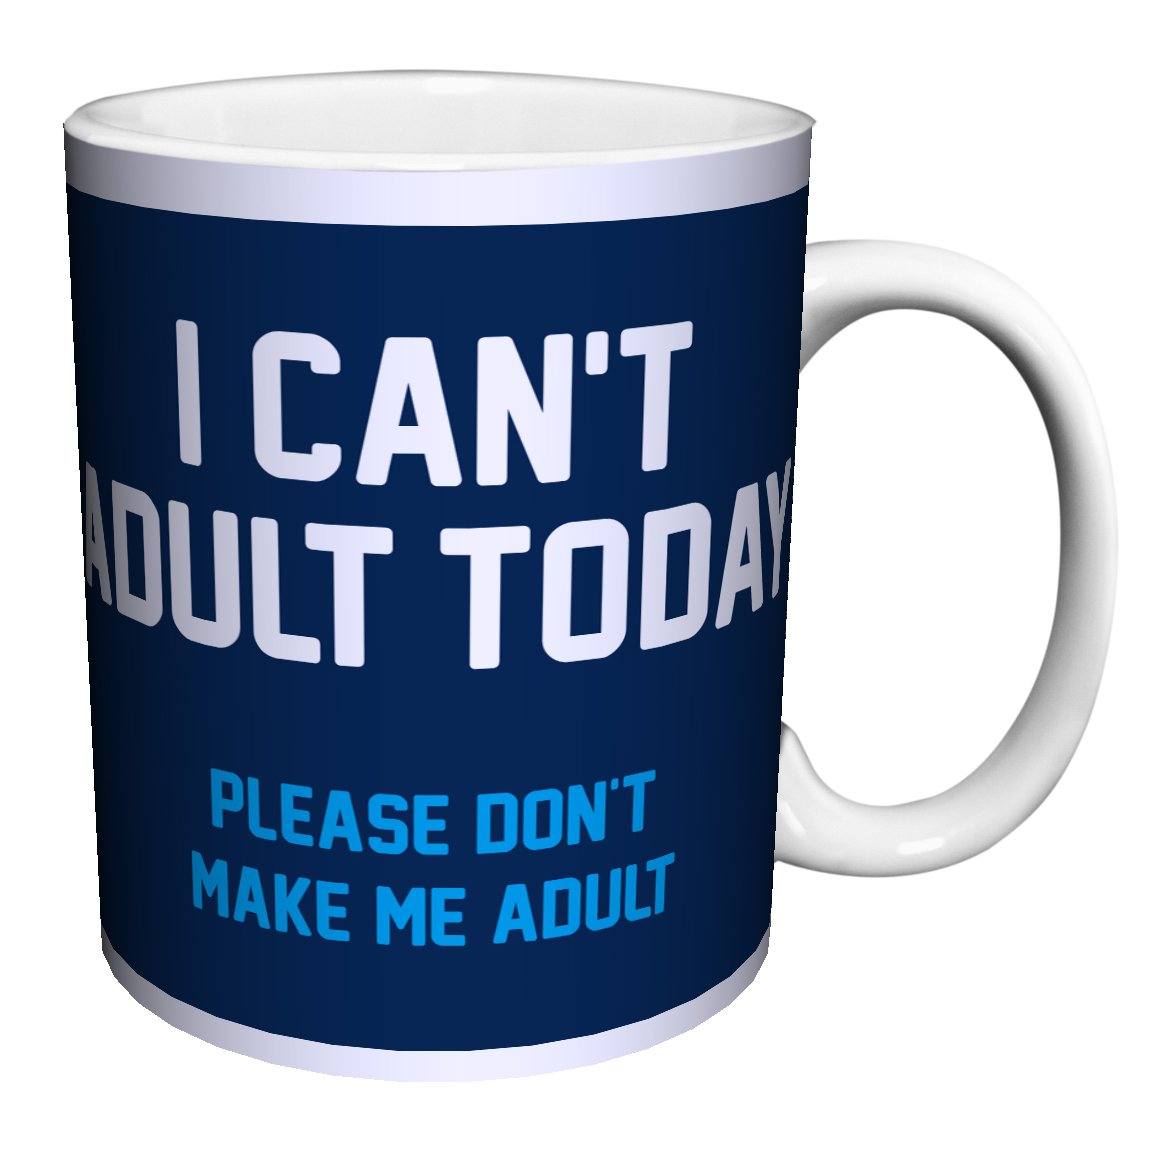 Snorg Tees I Can't Adult Today Novelty Attitude Lifestyle College Humor Ceramic Gift Coffee (Tea, Cocoa) 11 Oz. Mug